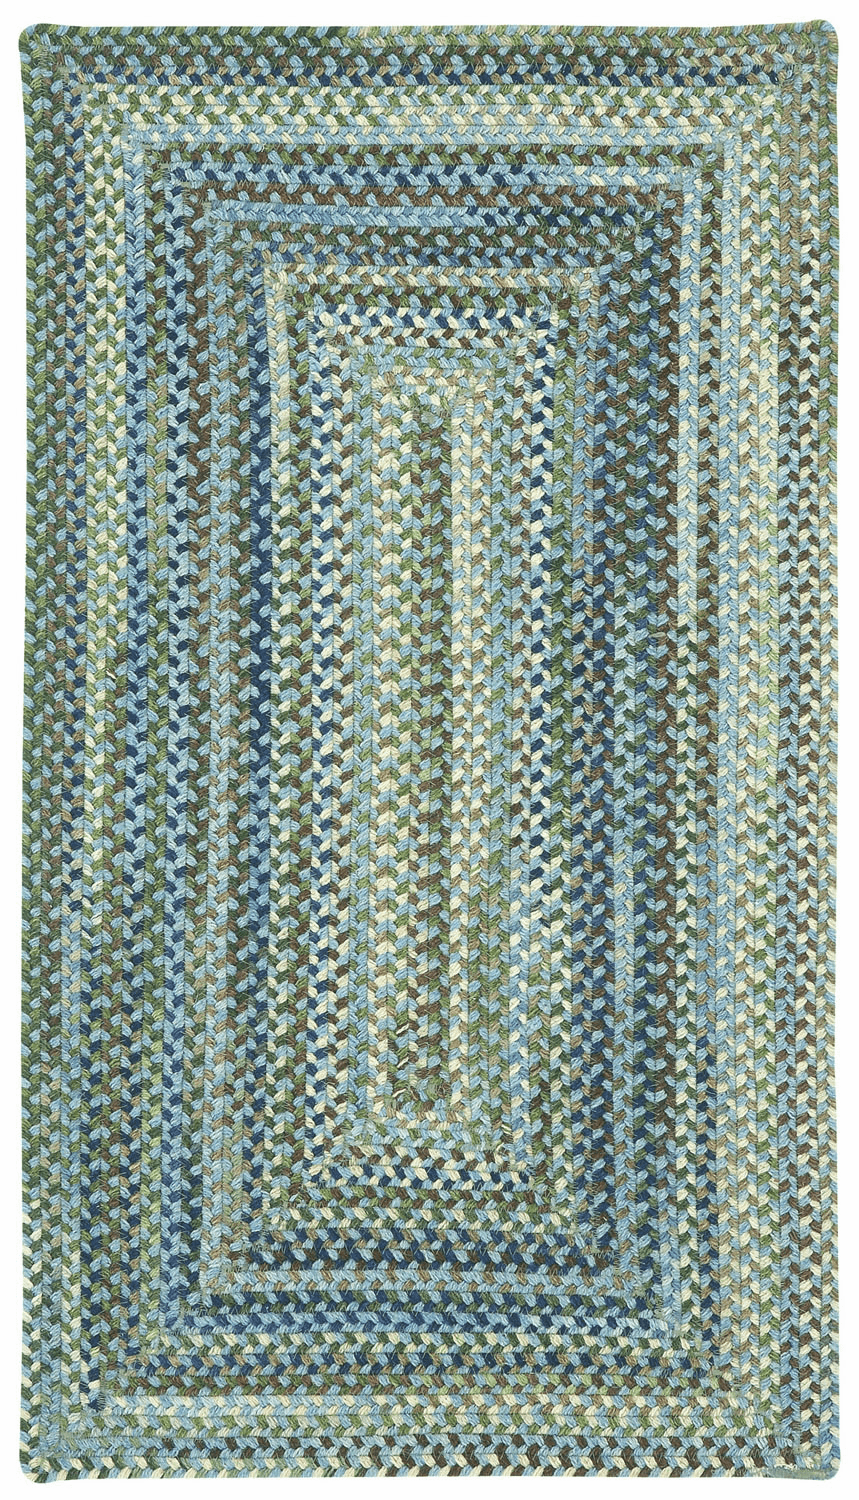 Hand-Braided Light Blue Rug